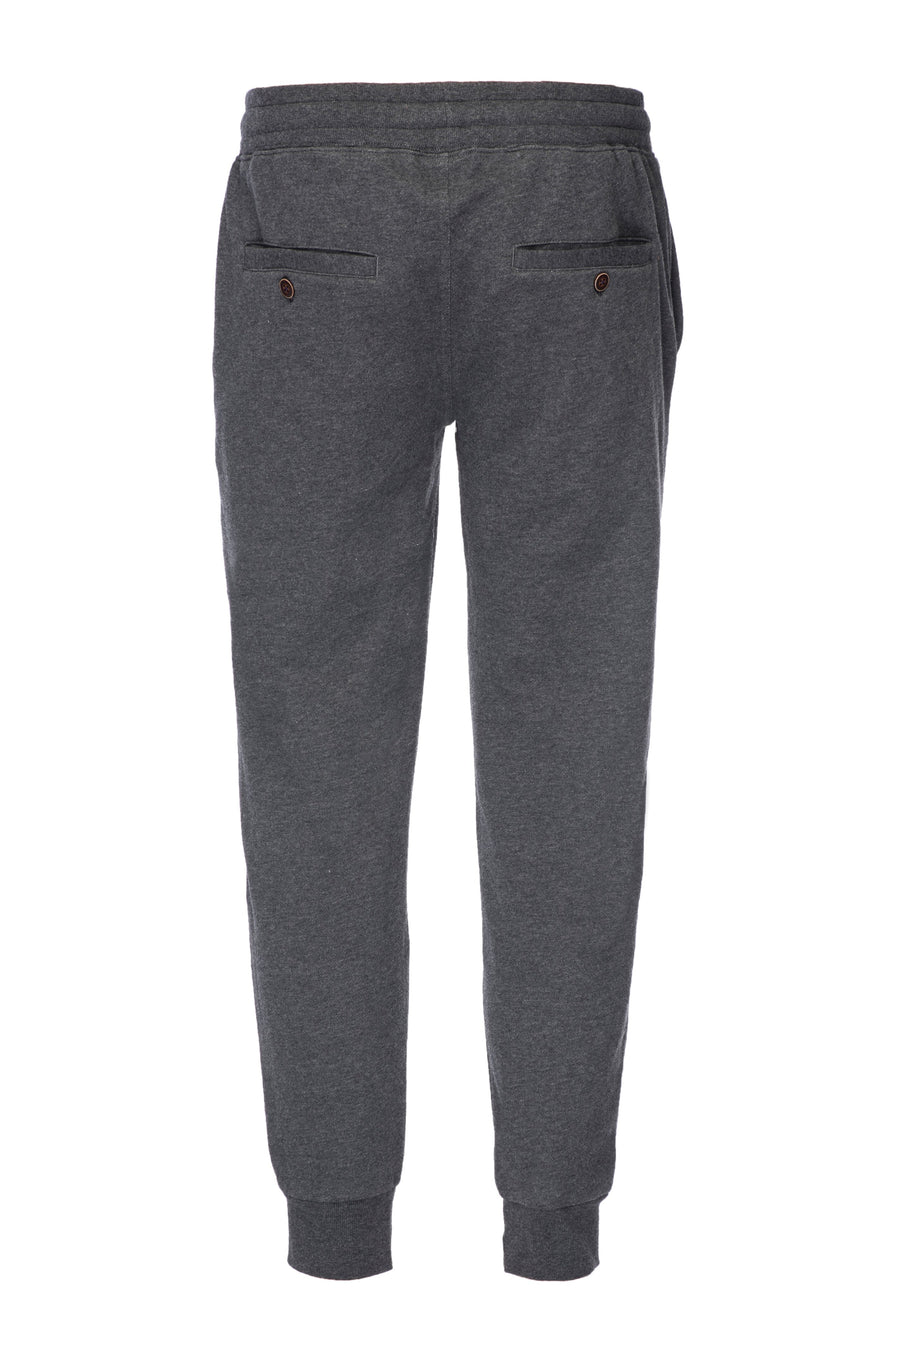 Robinson Burnout Jogger - Dark Gray